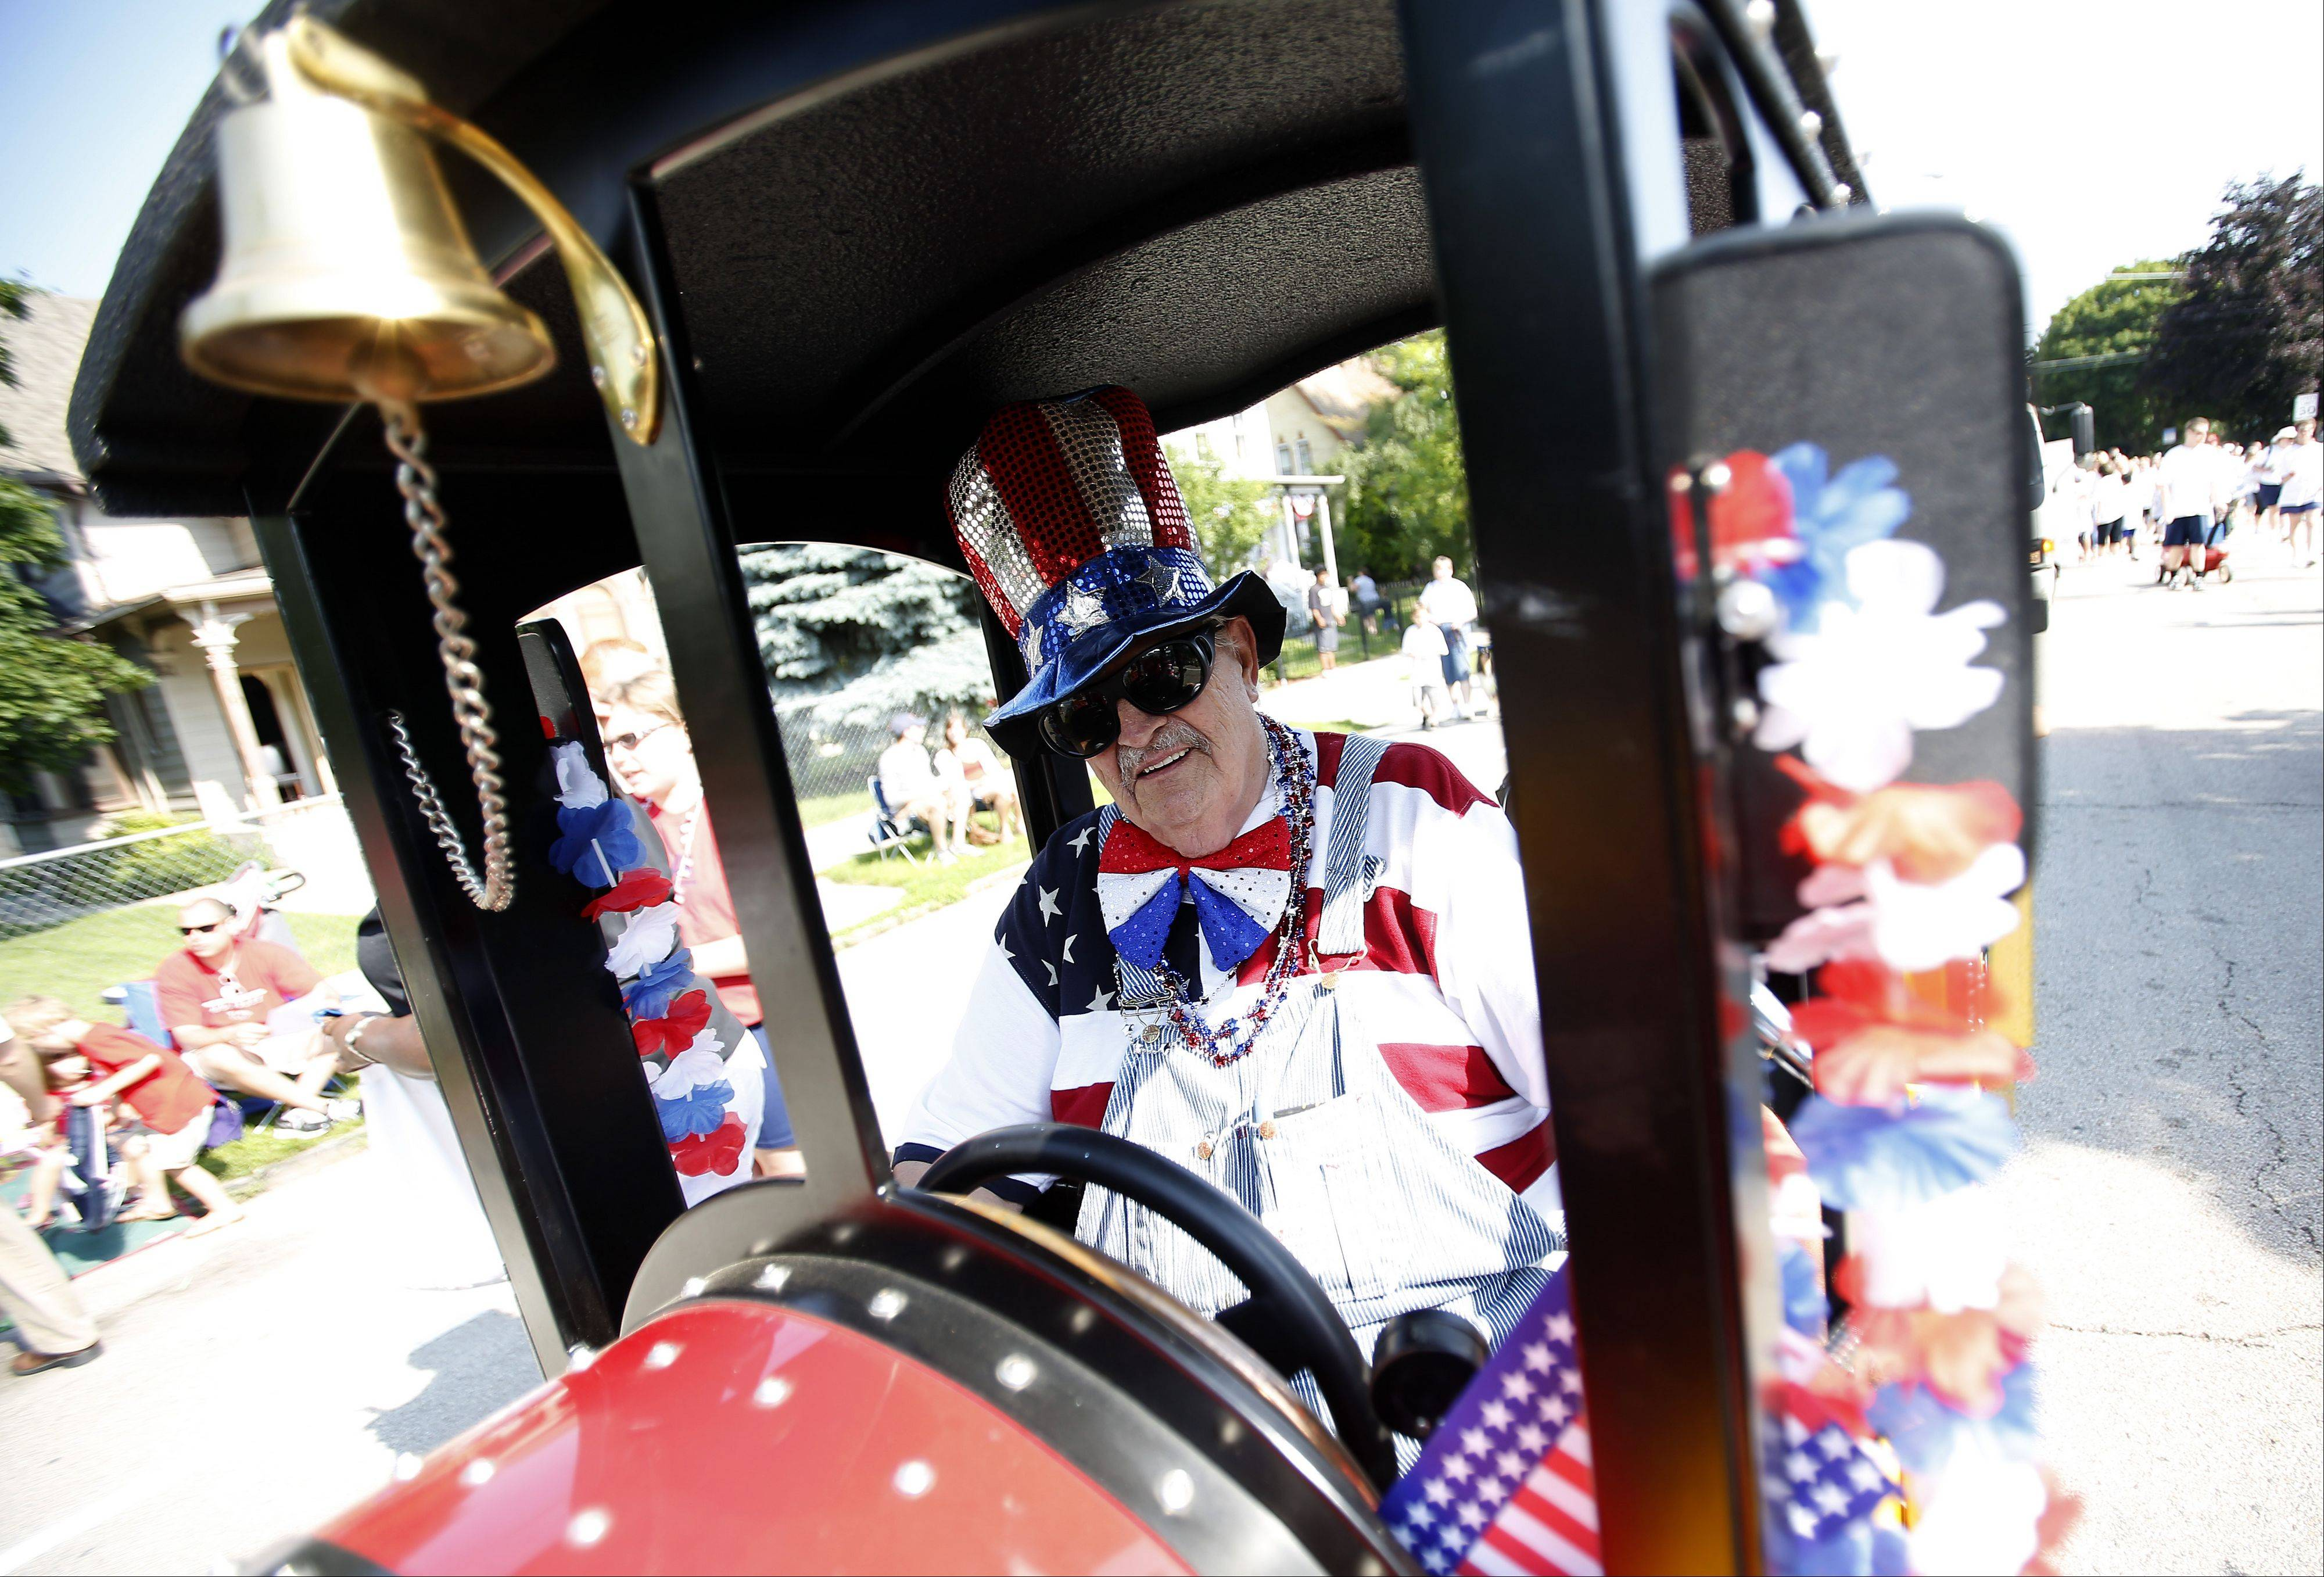 Bob Christensen of Sycamore pilots a small train during the 2013 Elgin Fourth of July Parade.